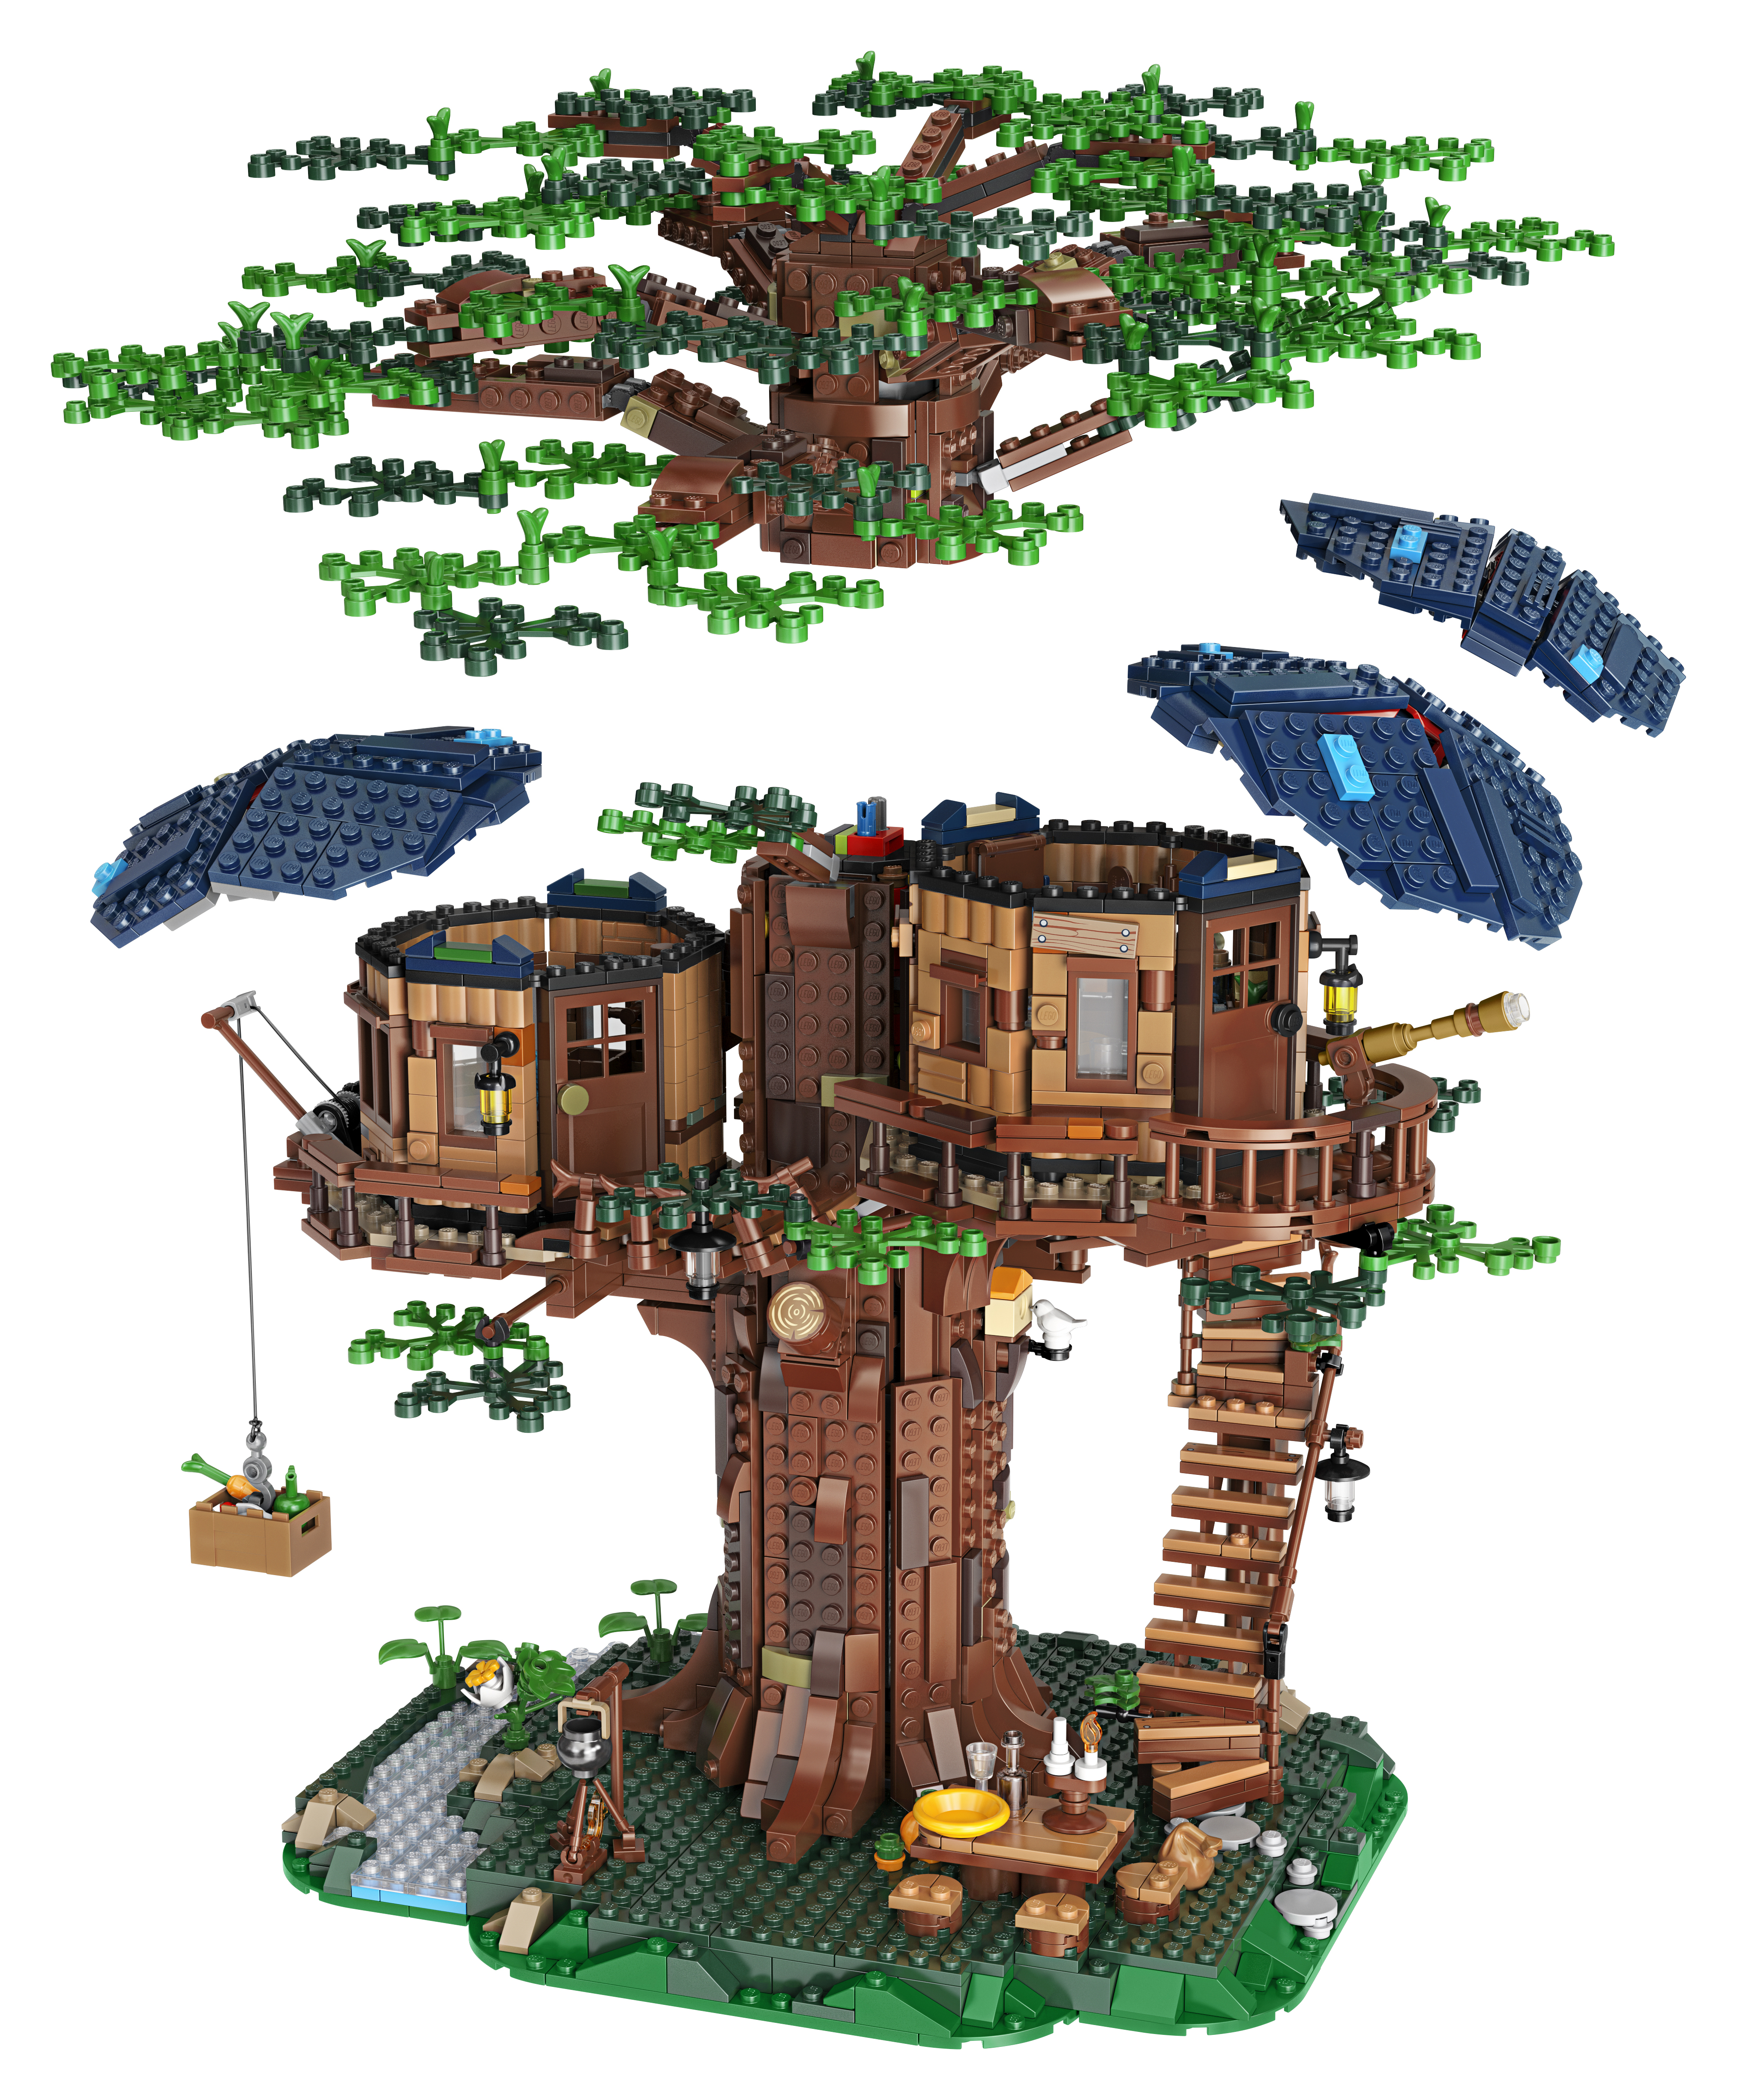 LEGO Ideas Launches an Environmentally Friendly Treehouse_6